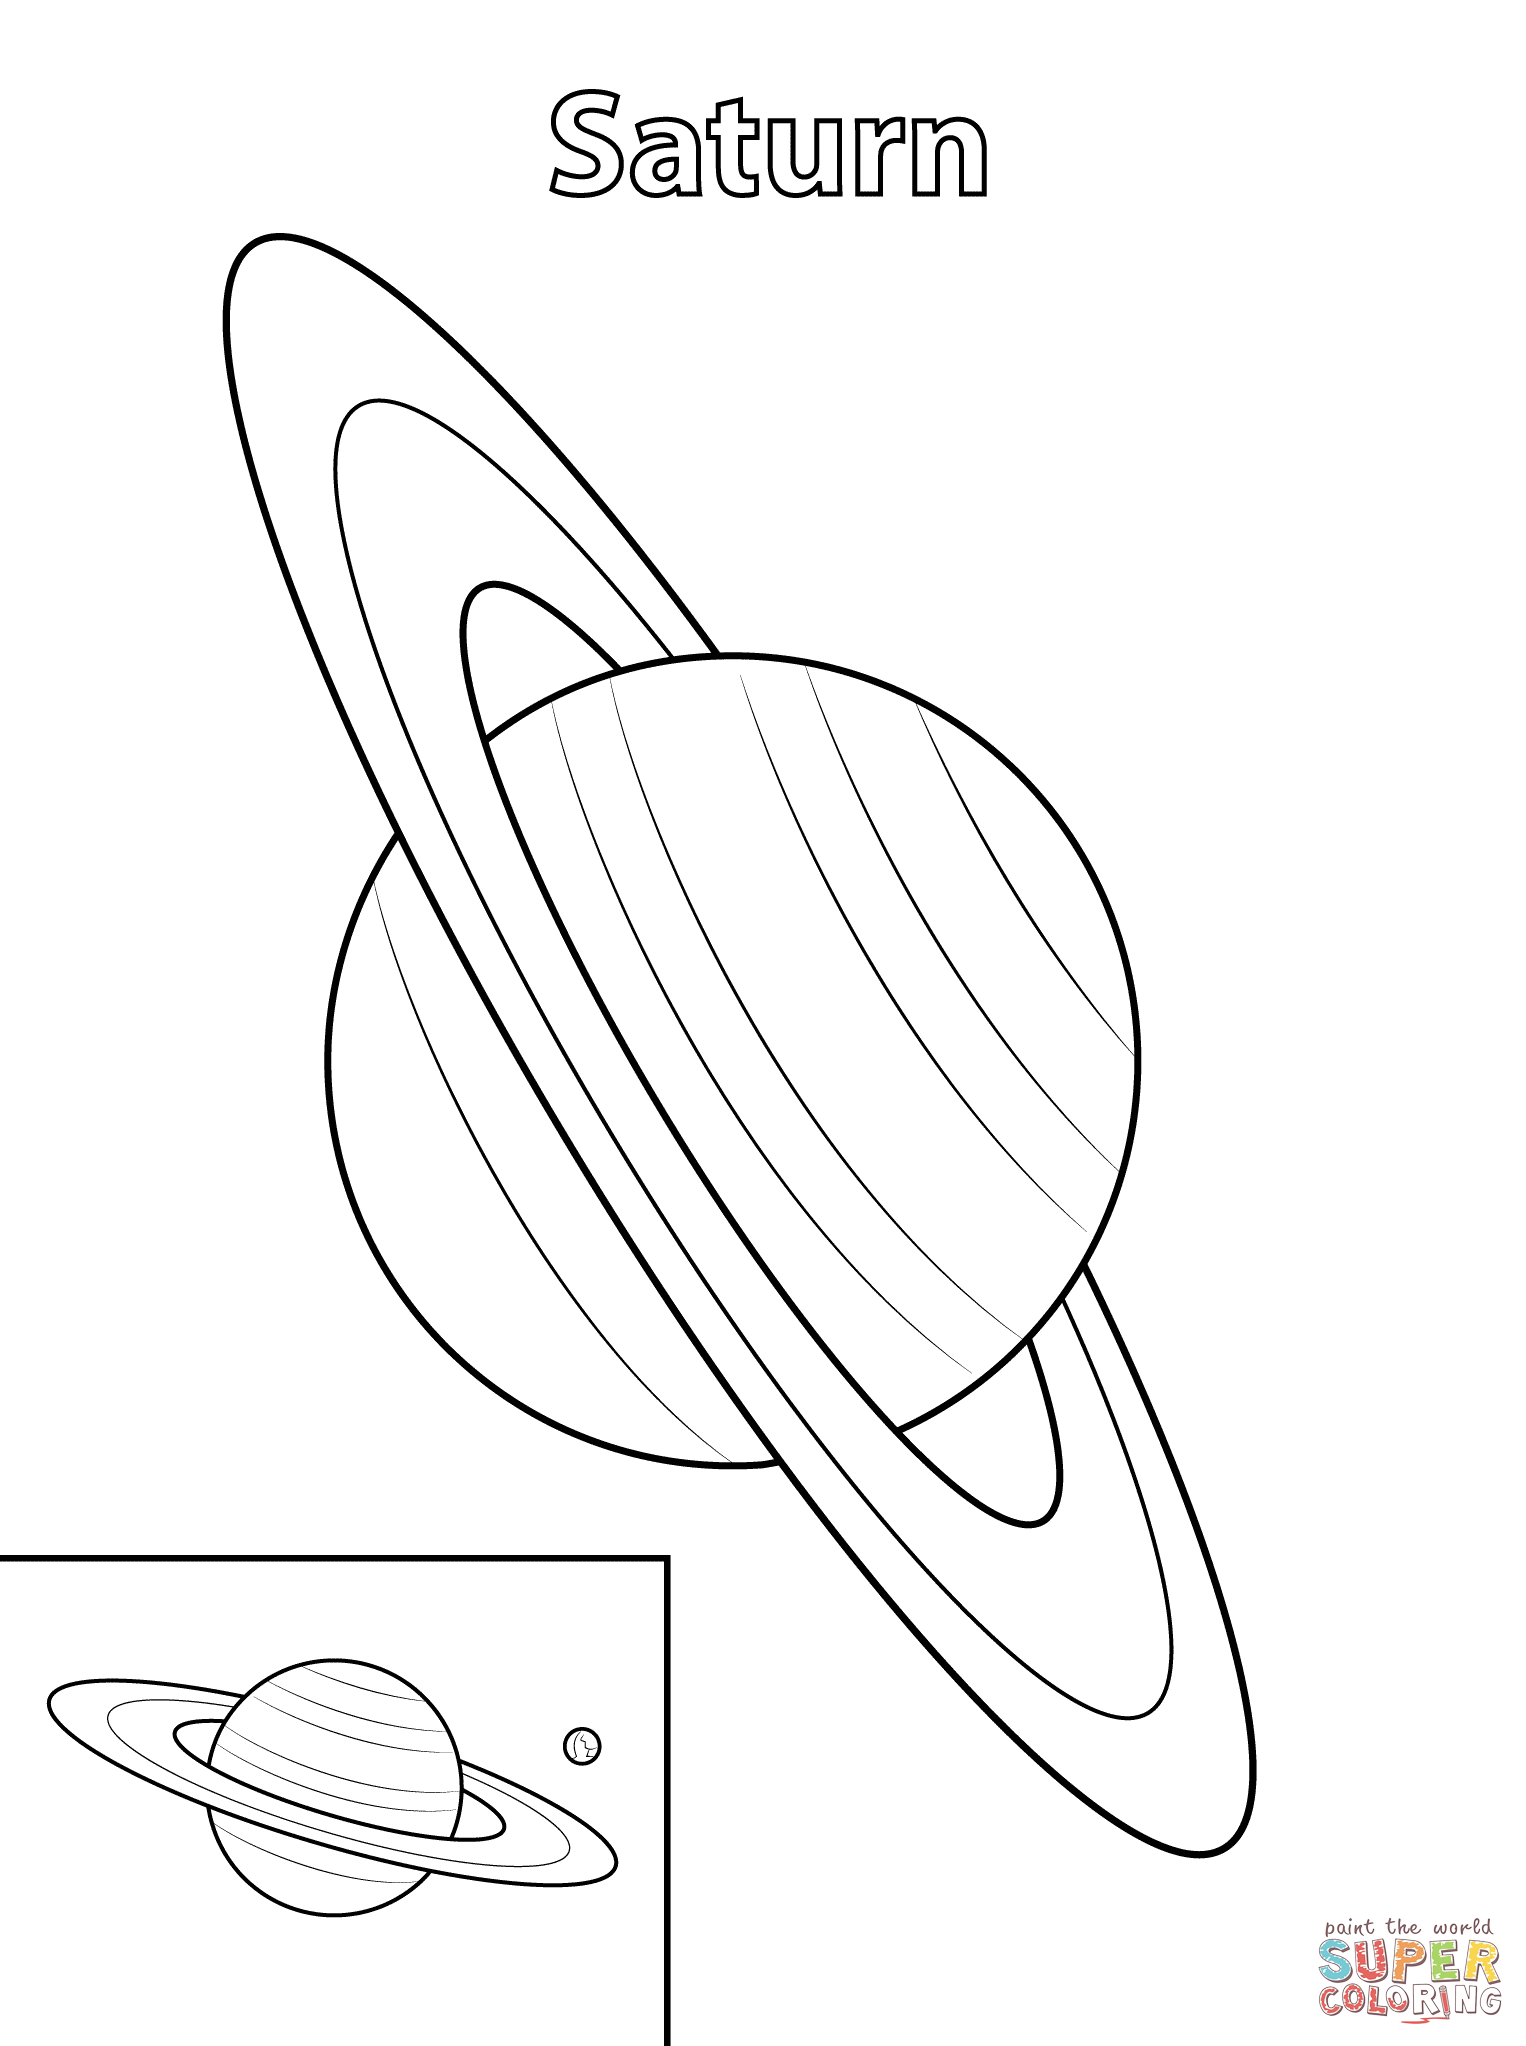 saturn planet coloring page free printable coloring pages - Planets Coloring Pages